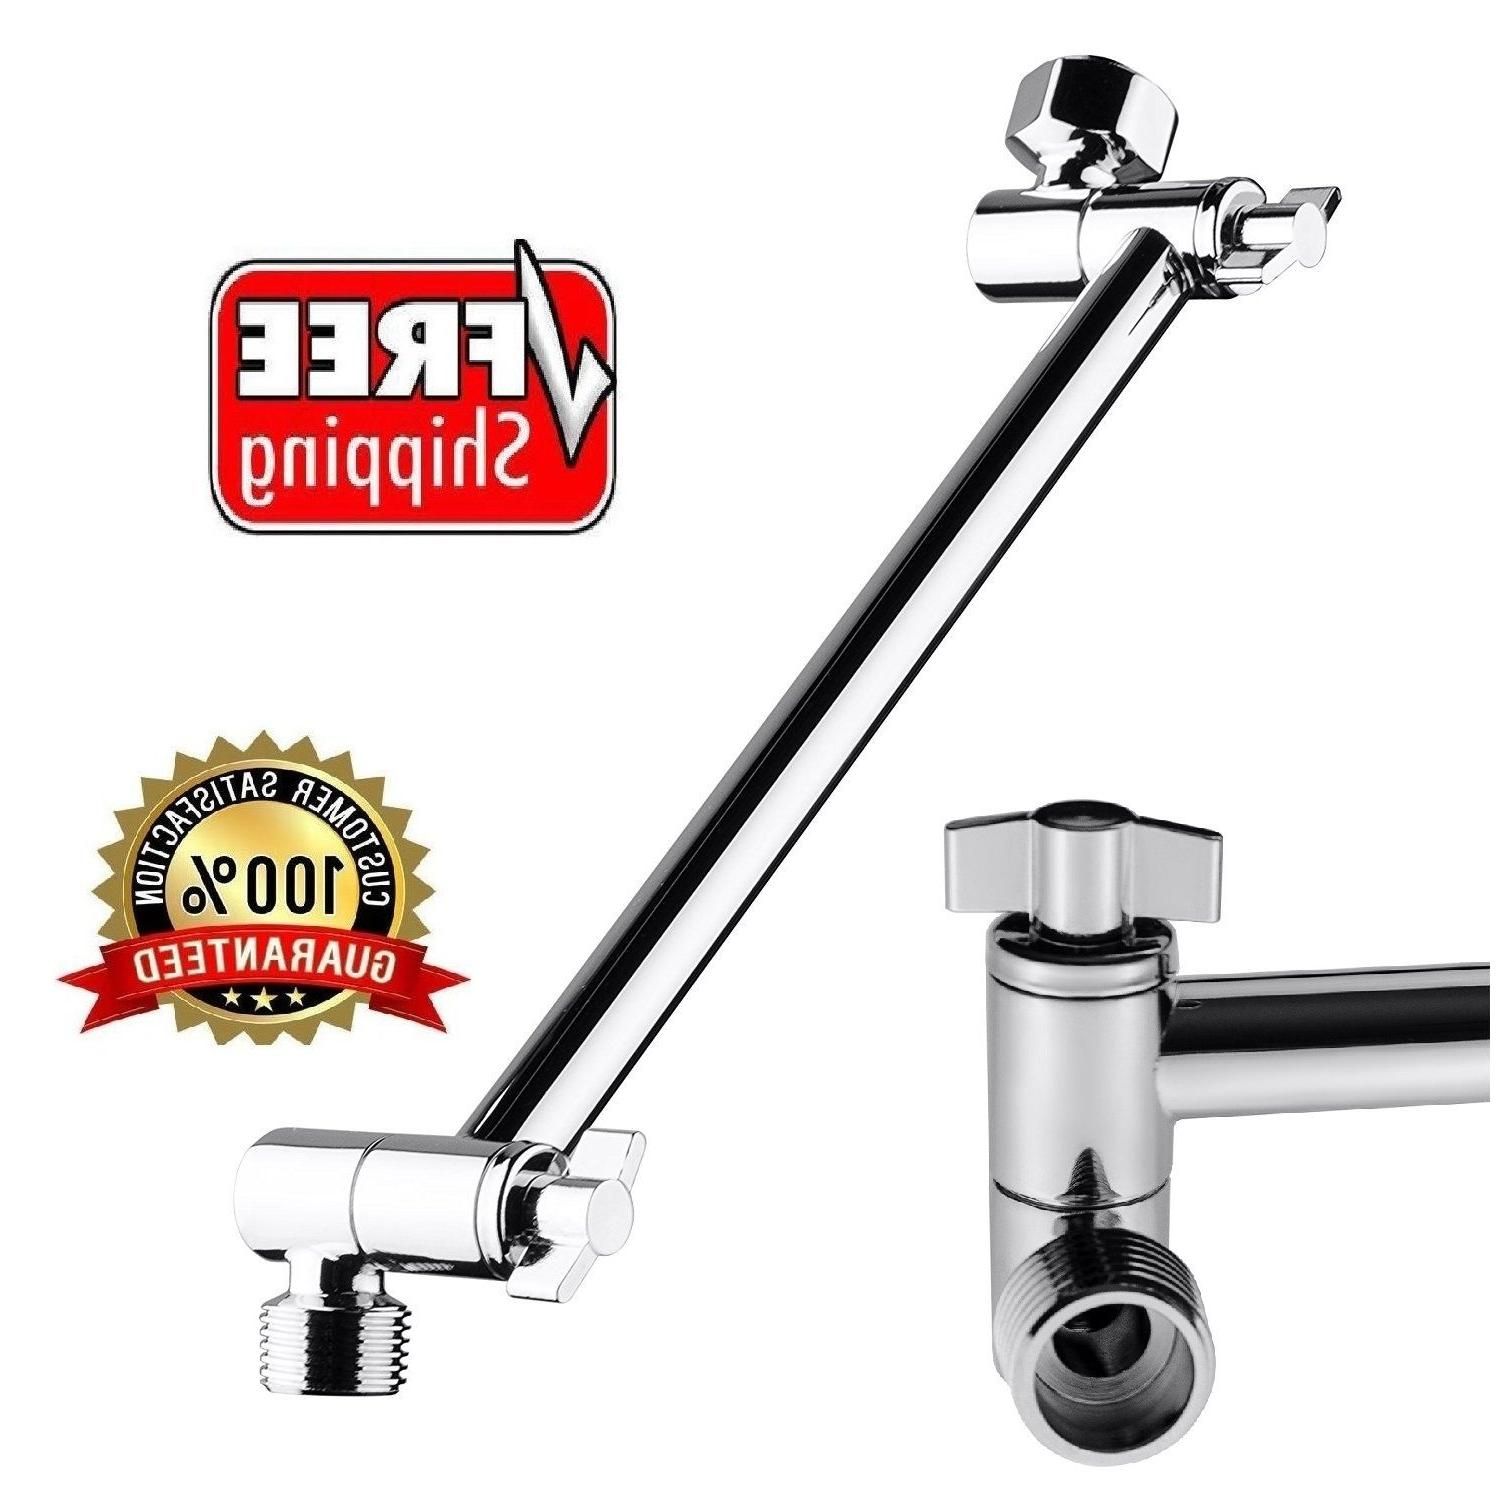 Bathroom Wall Mount Pipe Extension Shower Head Arm 9.5 Inch